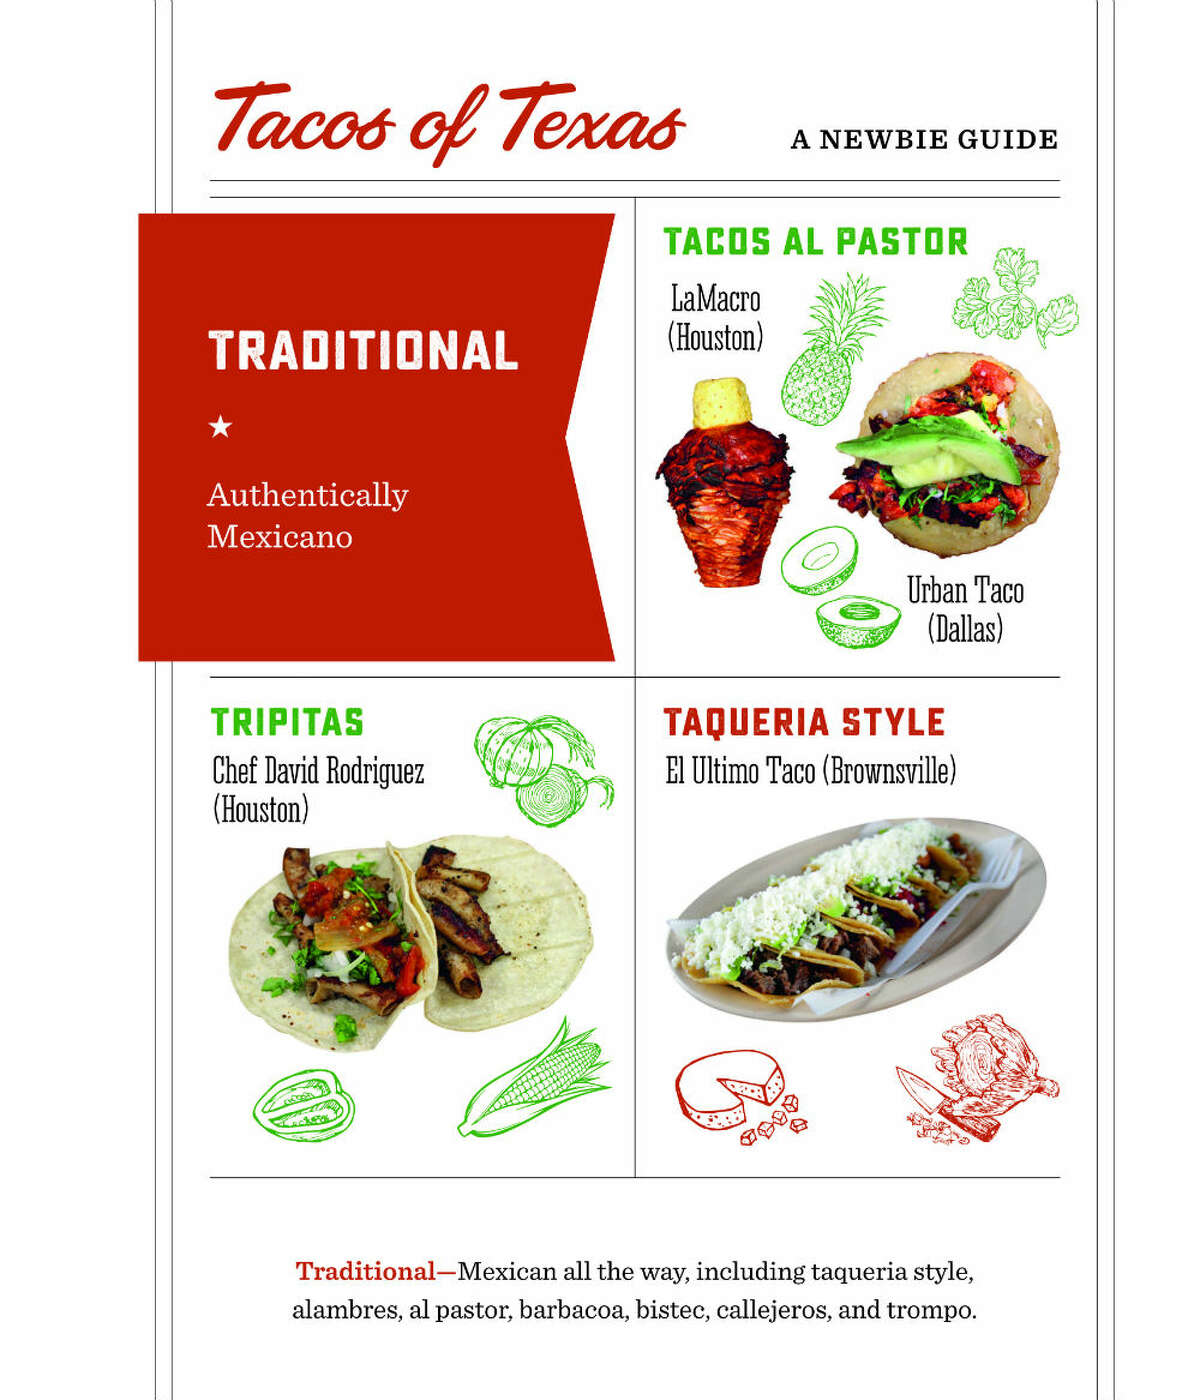 Traditional Traditional or authentically Mexican tacos would include traditional tacos al pastor, taqueria-style tacos, or tripitas. Expect barbacoa, bistec and trompo.